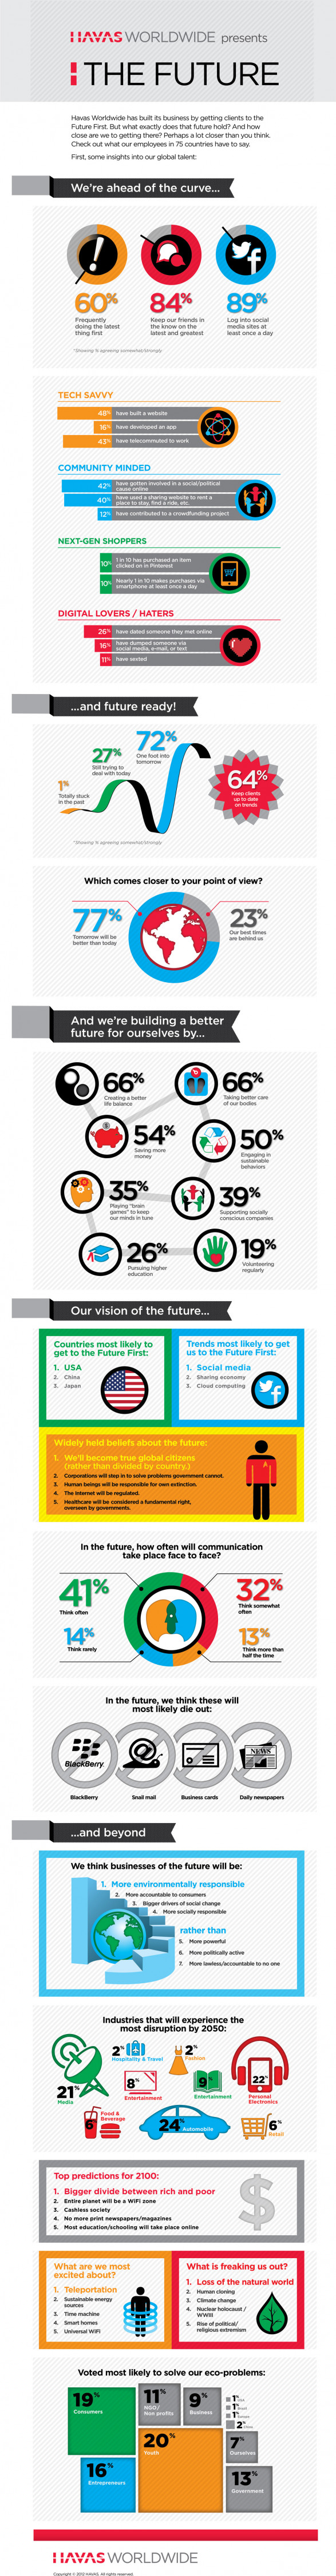 Havas Worldwide Future First Infographic